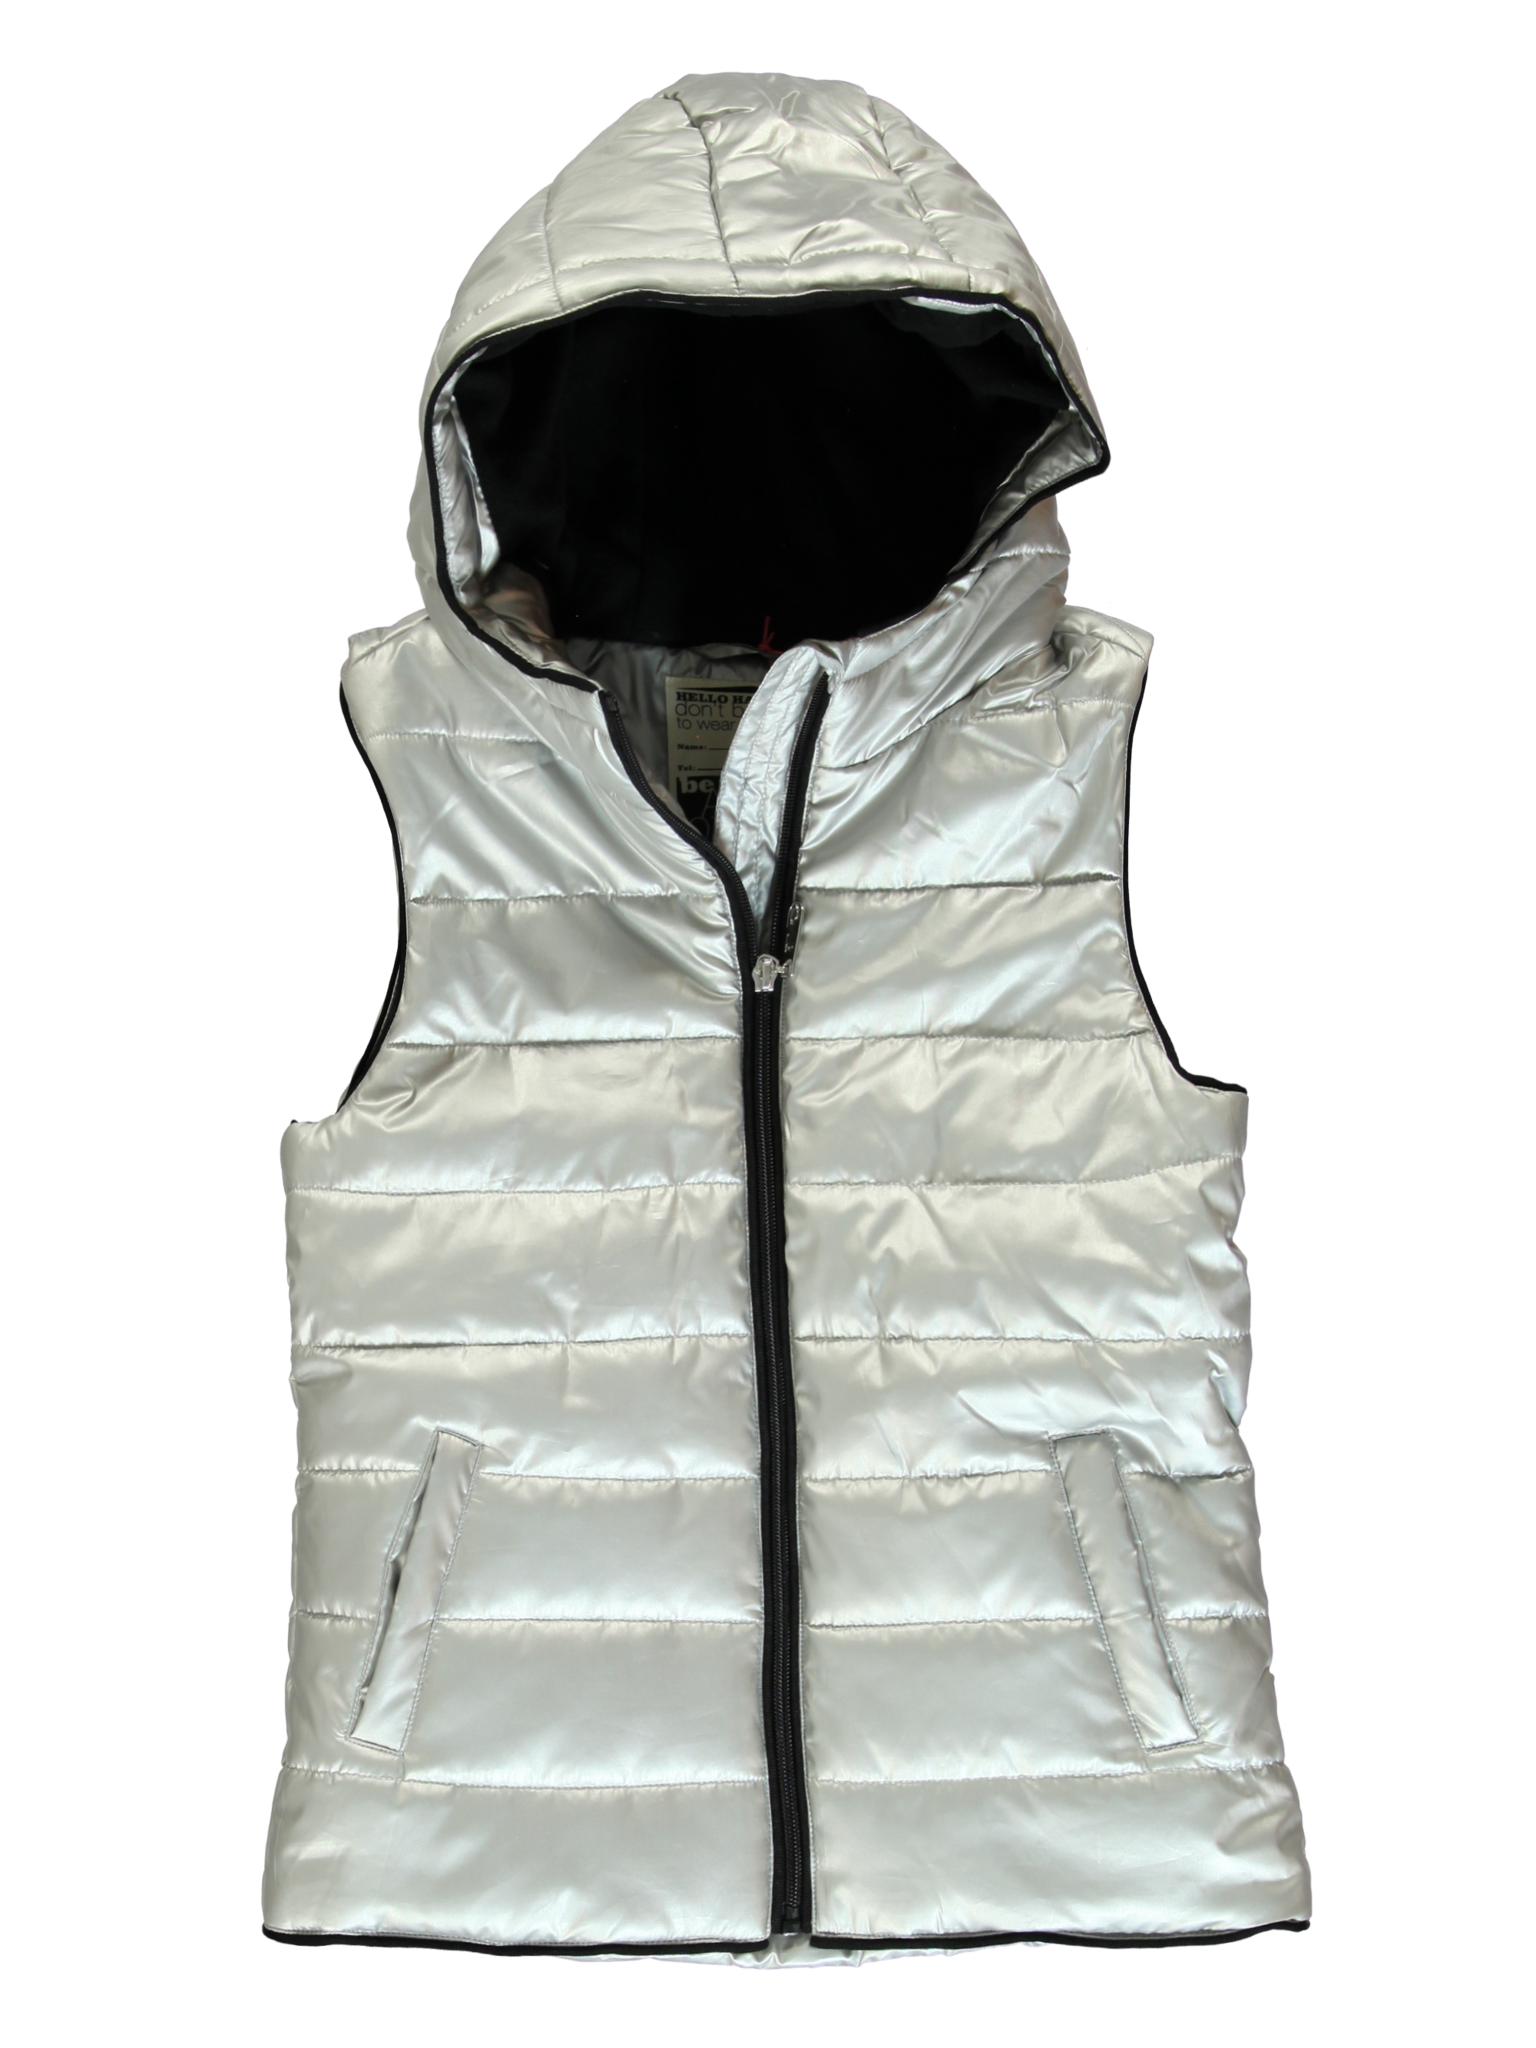 All Brands | Winterproducts Teen Girls | Bodywarmer | 10 pcs/box